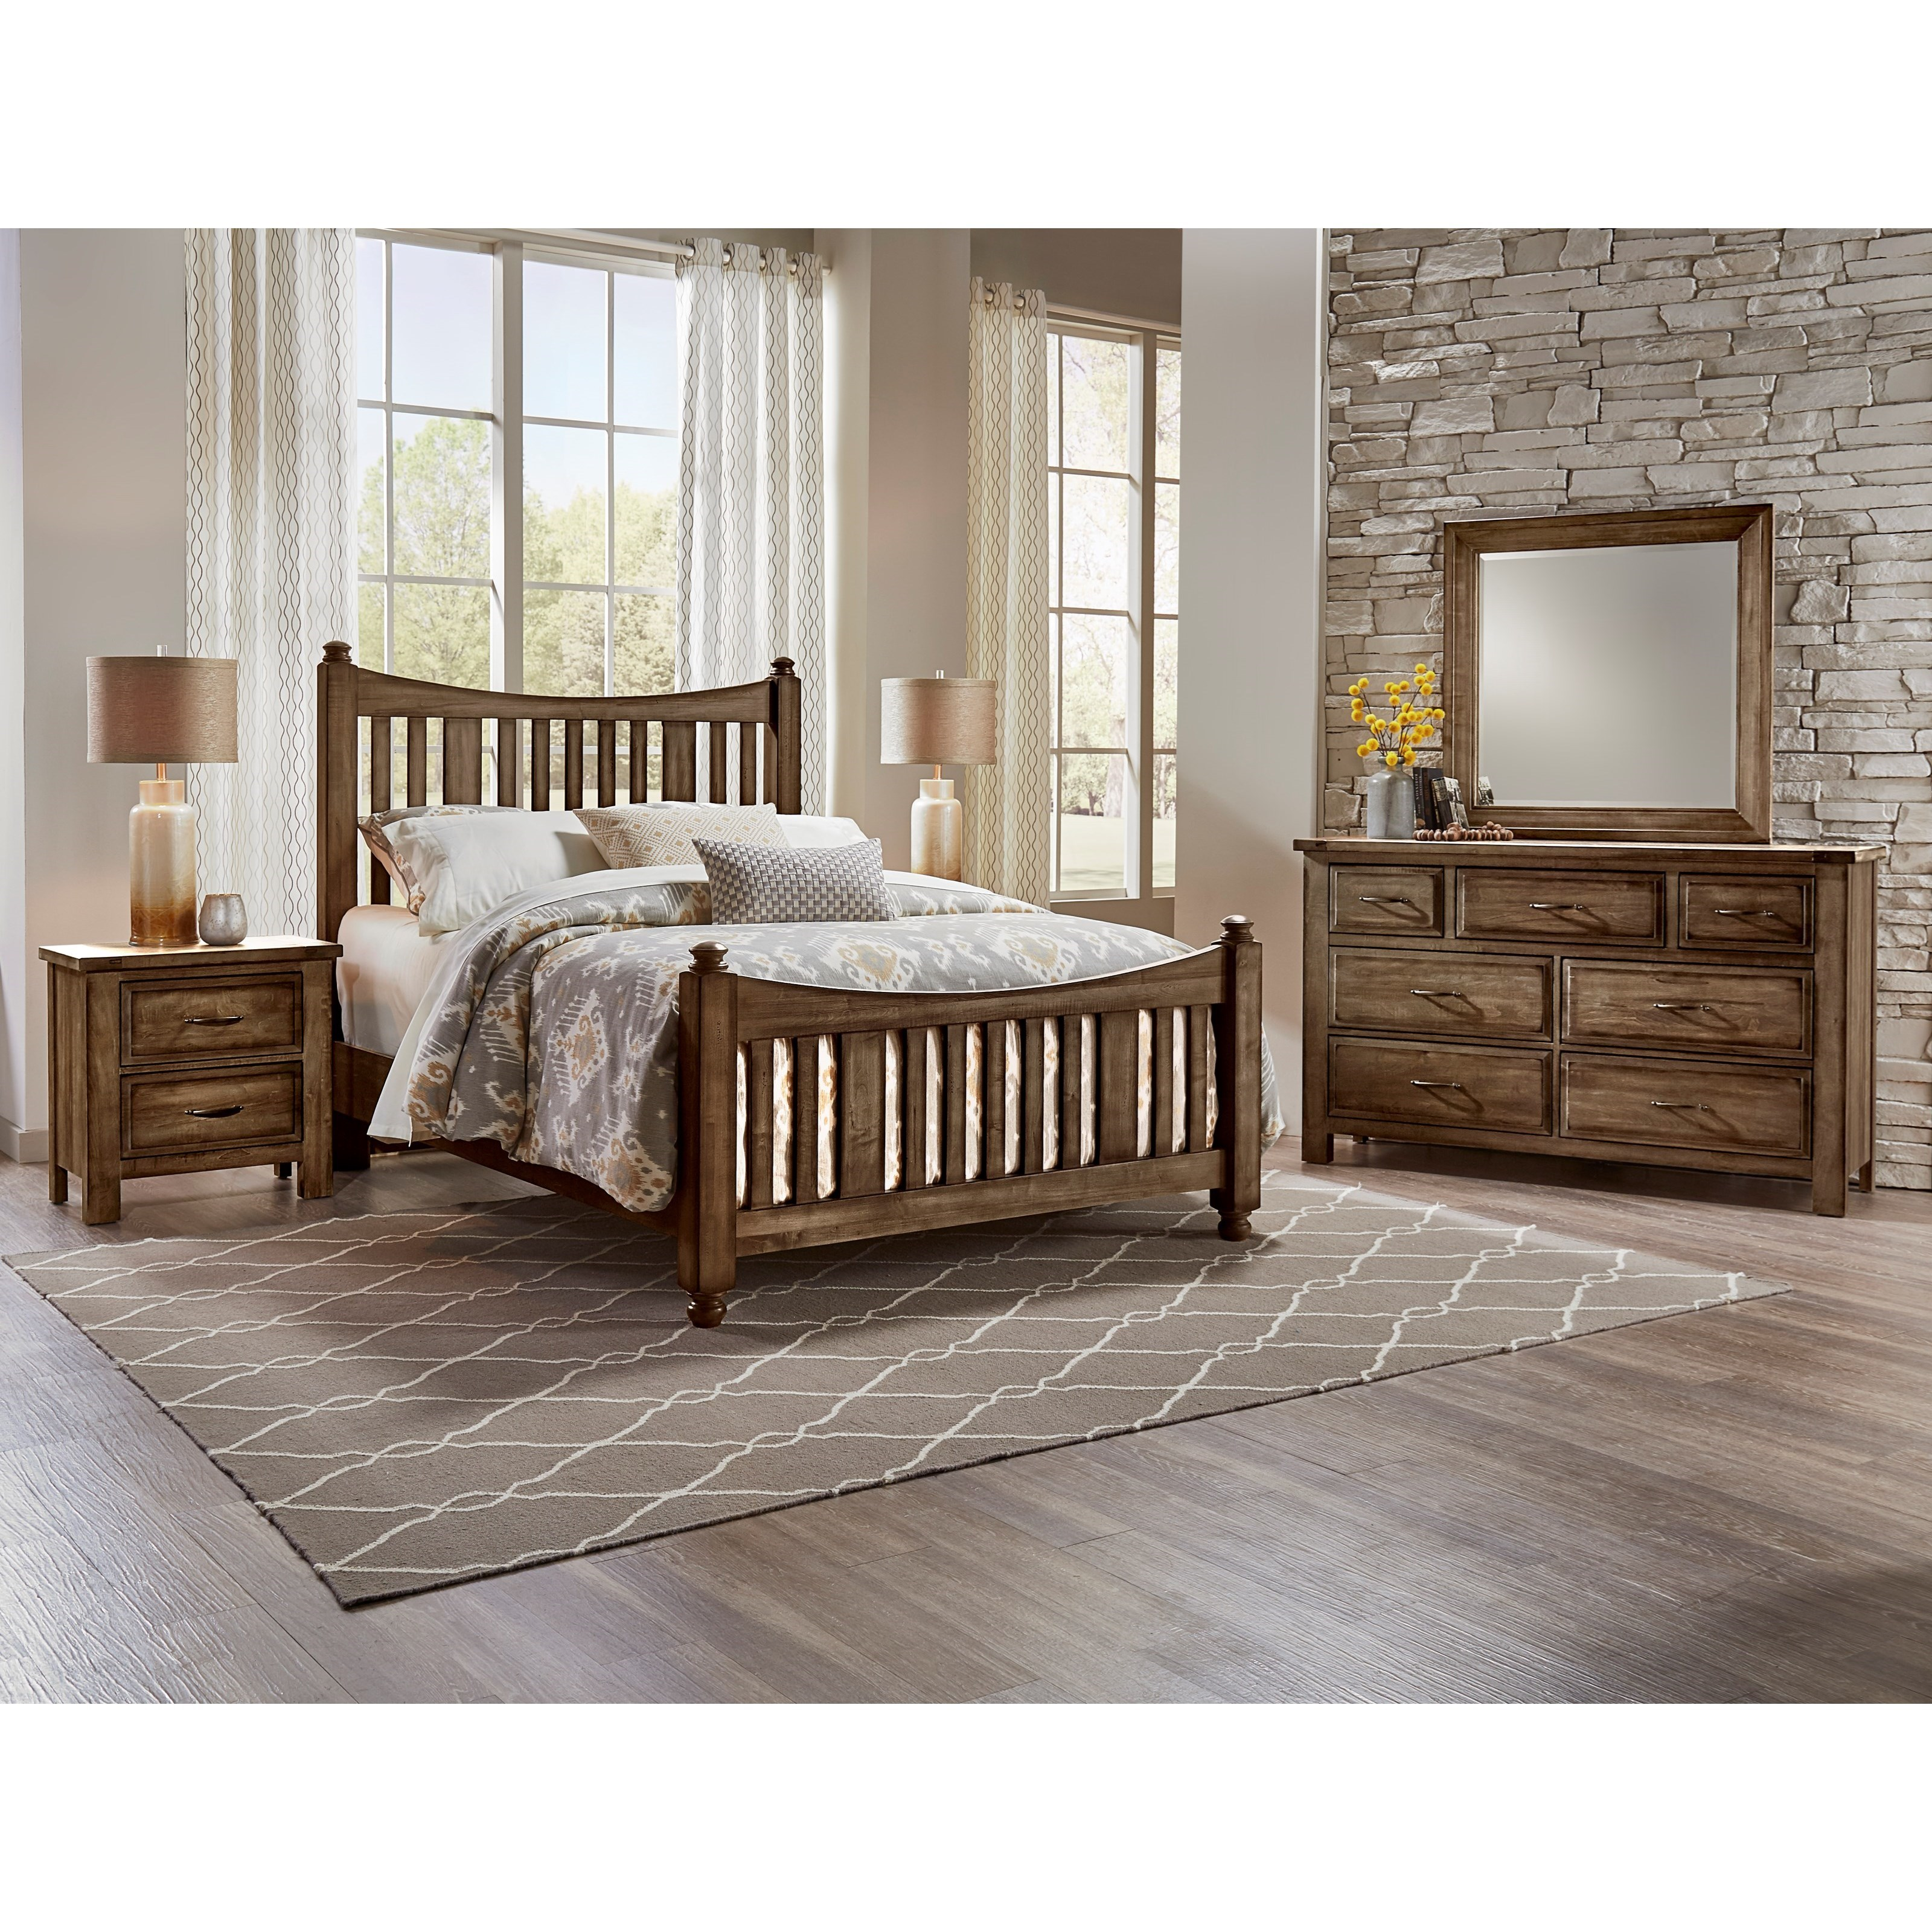 Maple Road Queen Bedroom Group by Artisan & Post at Northeast Factory Direct